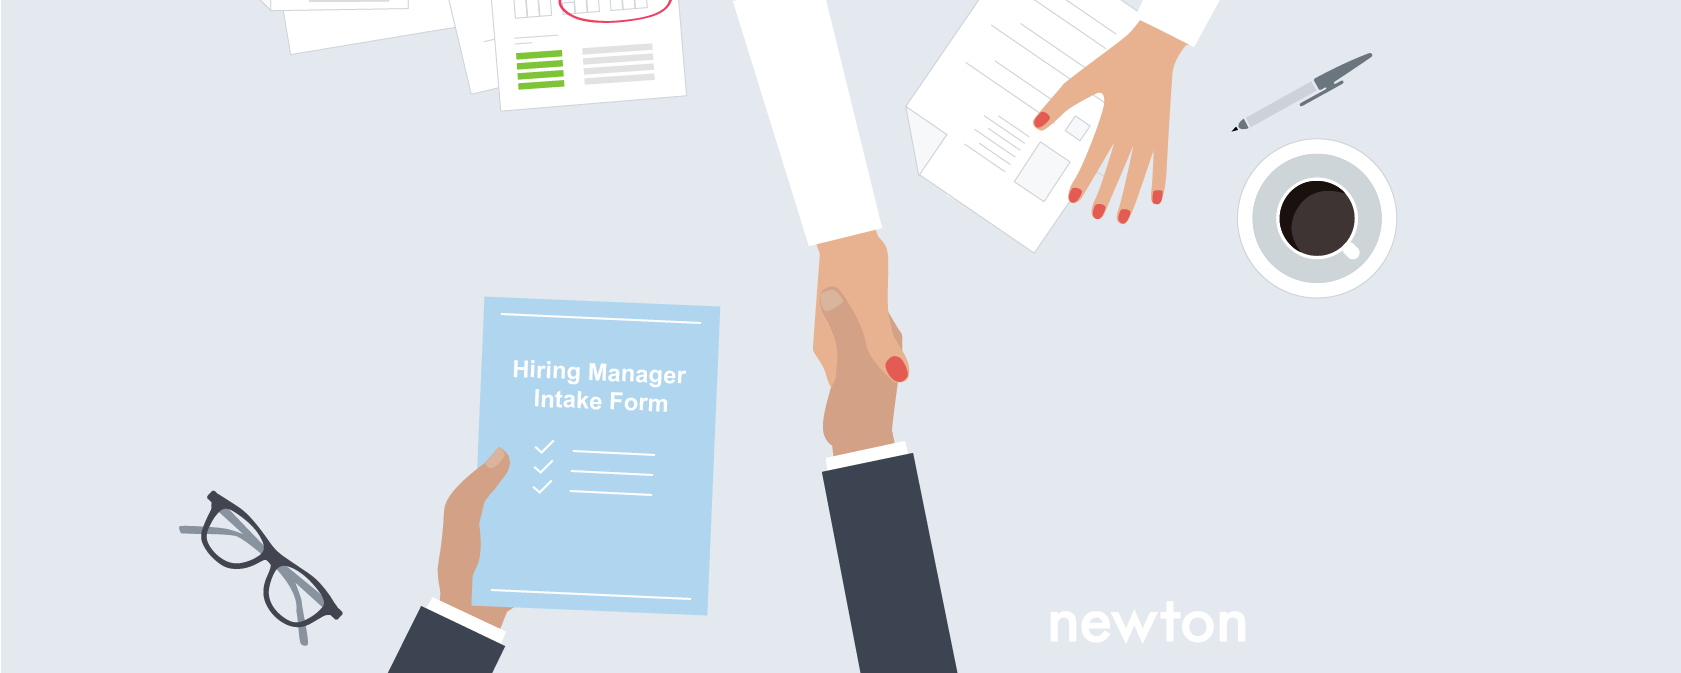 A hiring manager and recruiter develop their recruiting strategy using the hiring manager intake form.